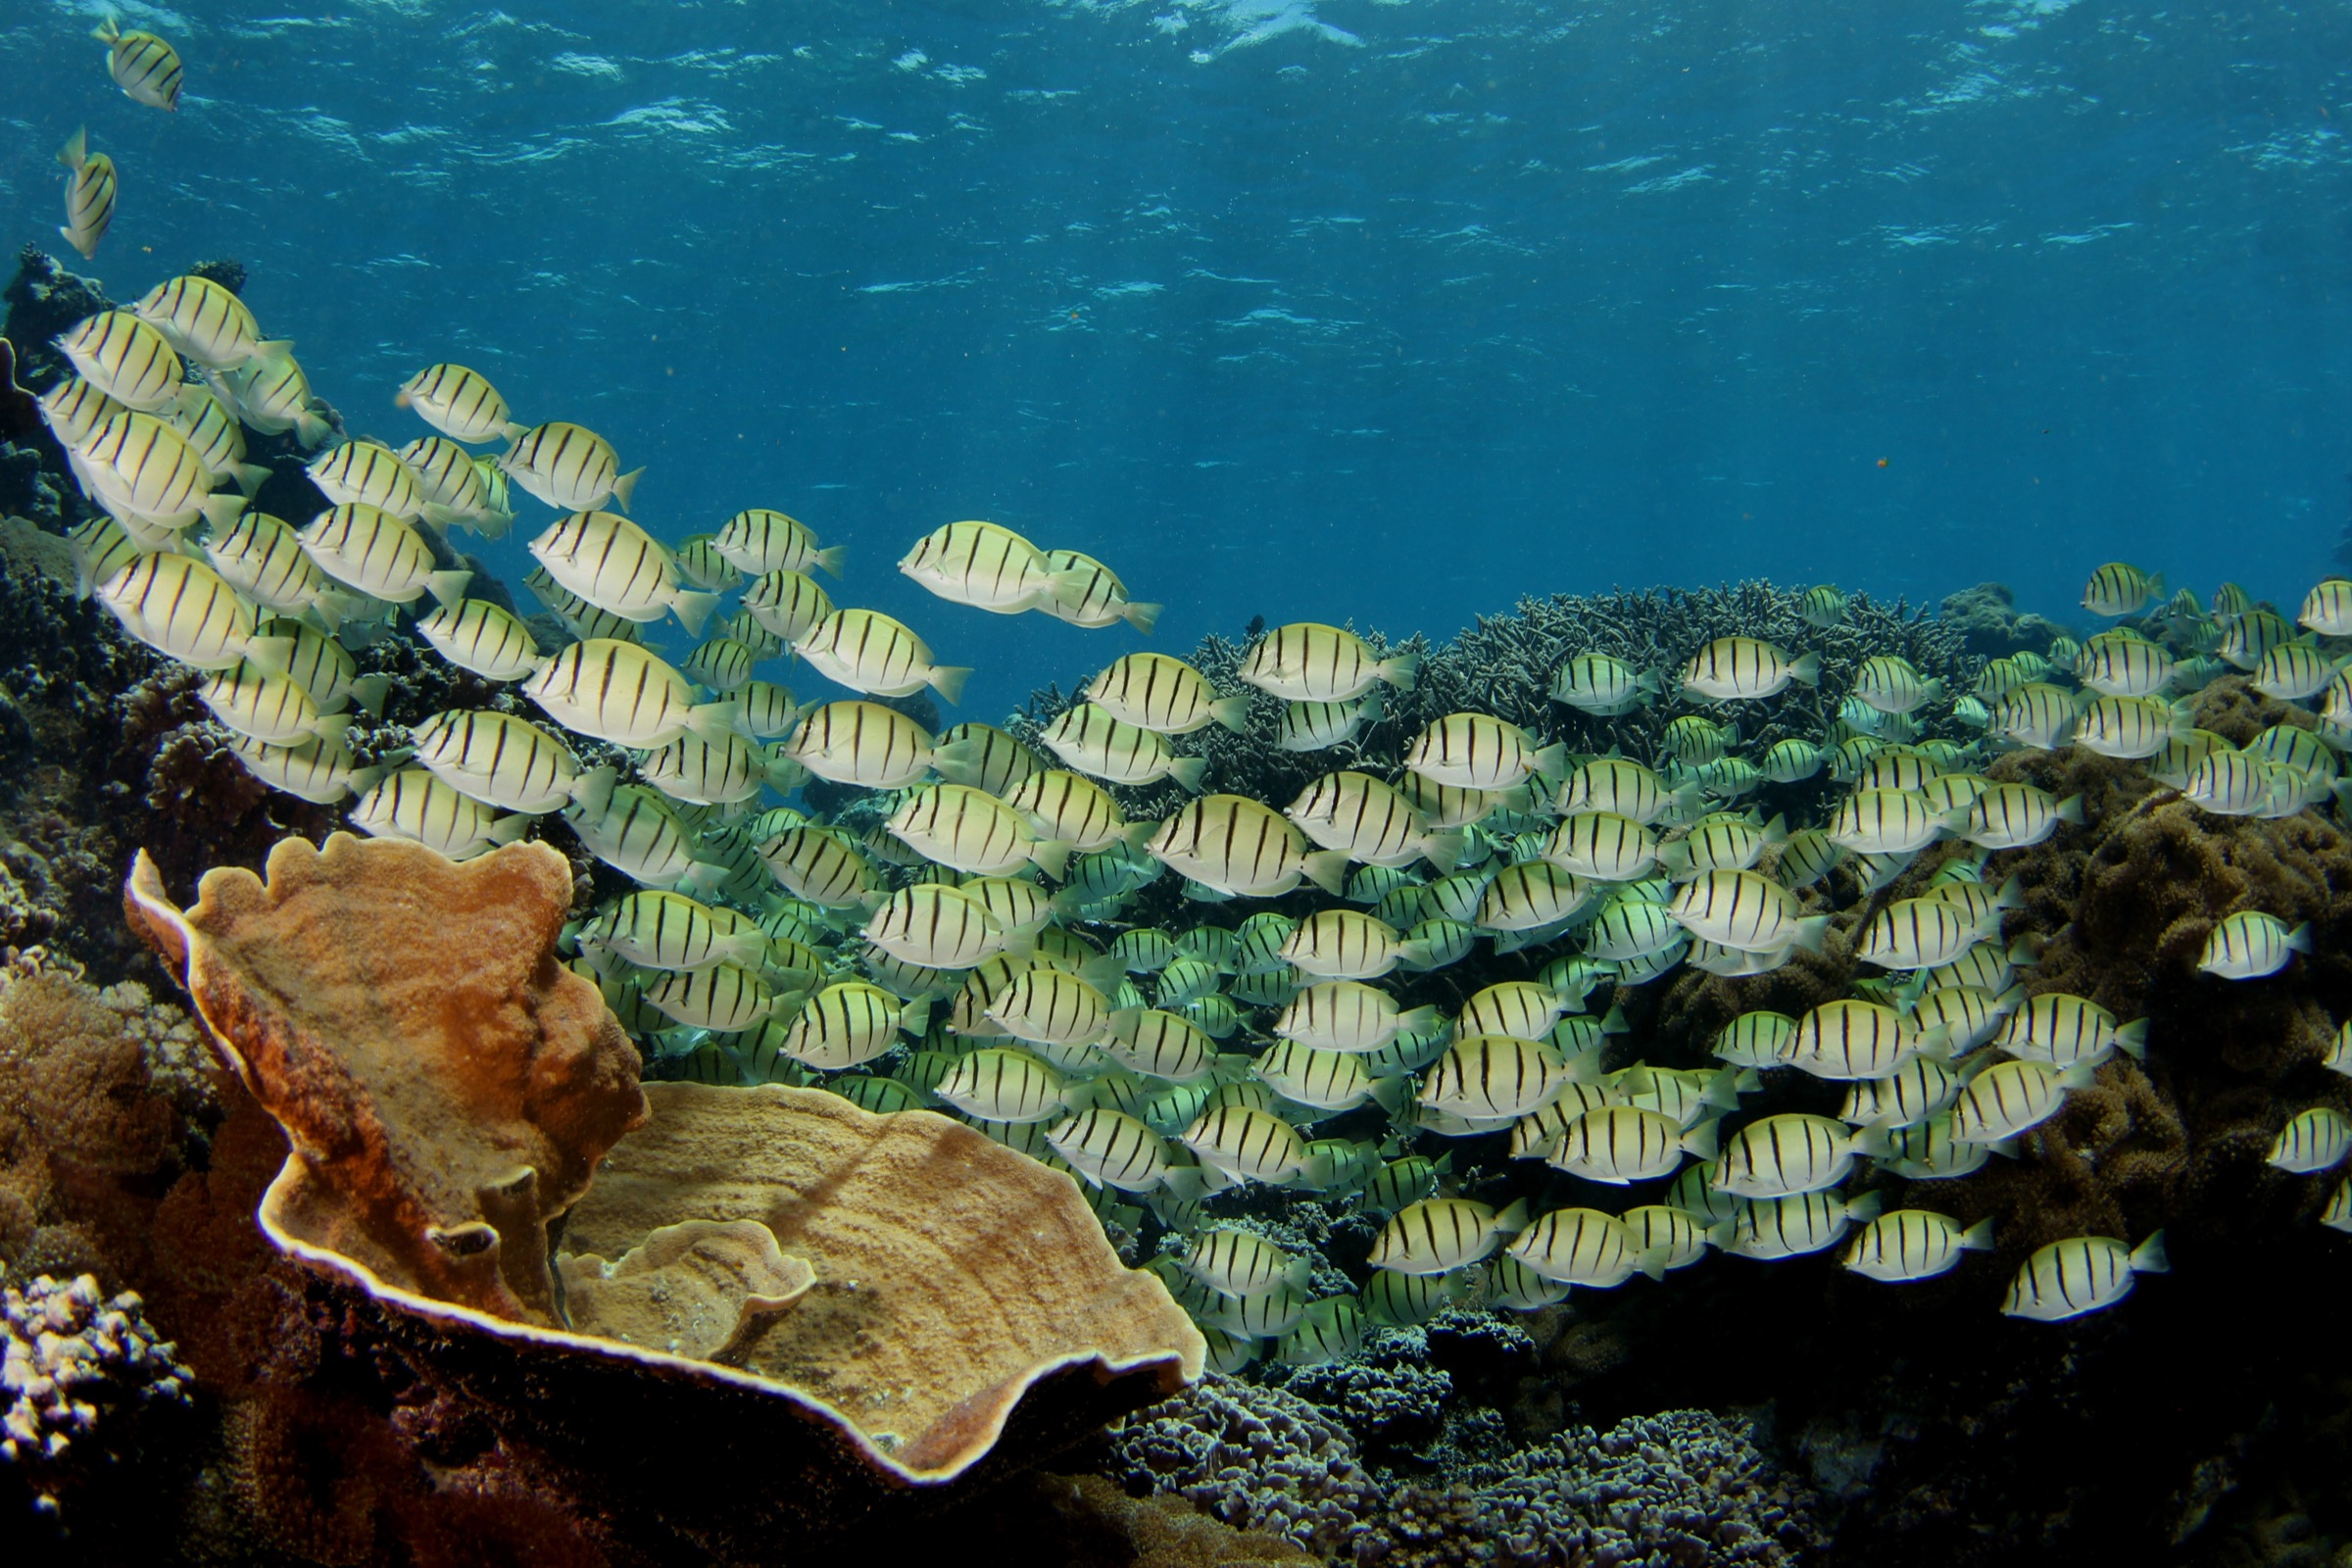 A school of convict surgeonfish (<em>Acanthurus triostegus</em>) forage along a shallow coral reef in the central Pacific. Photograph by Brian Zgliczynski/100 Island Challenge